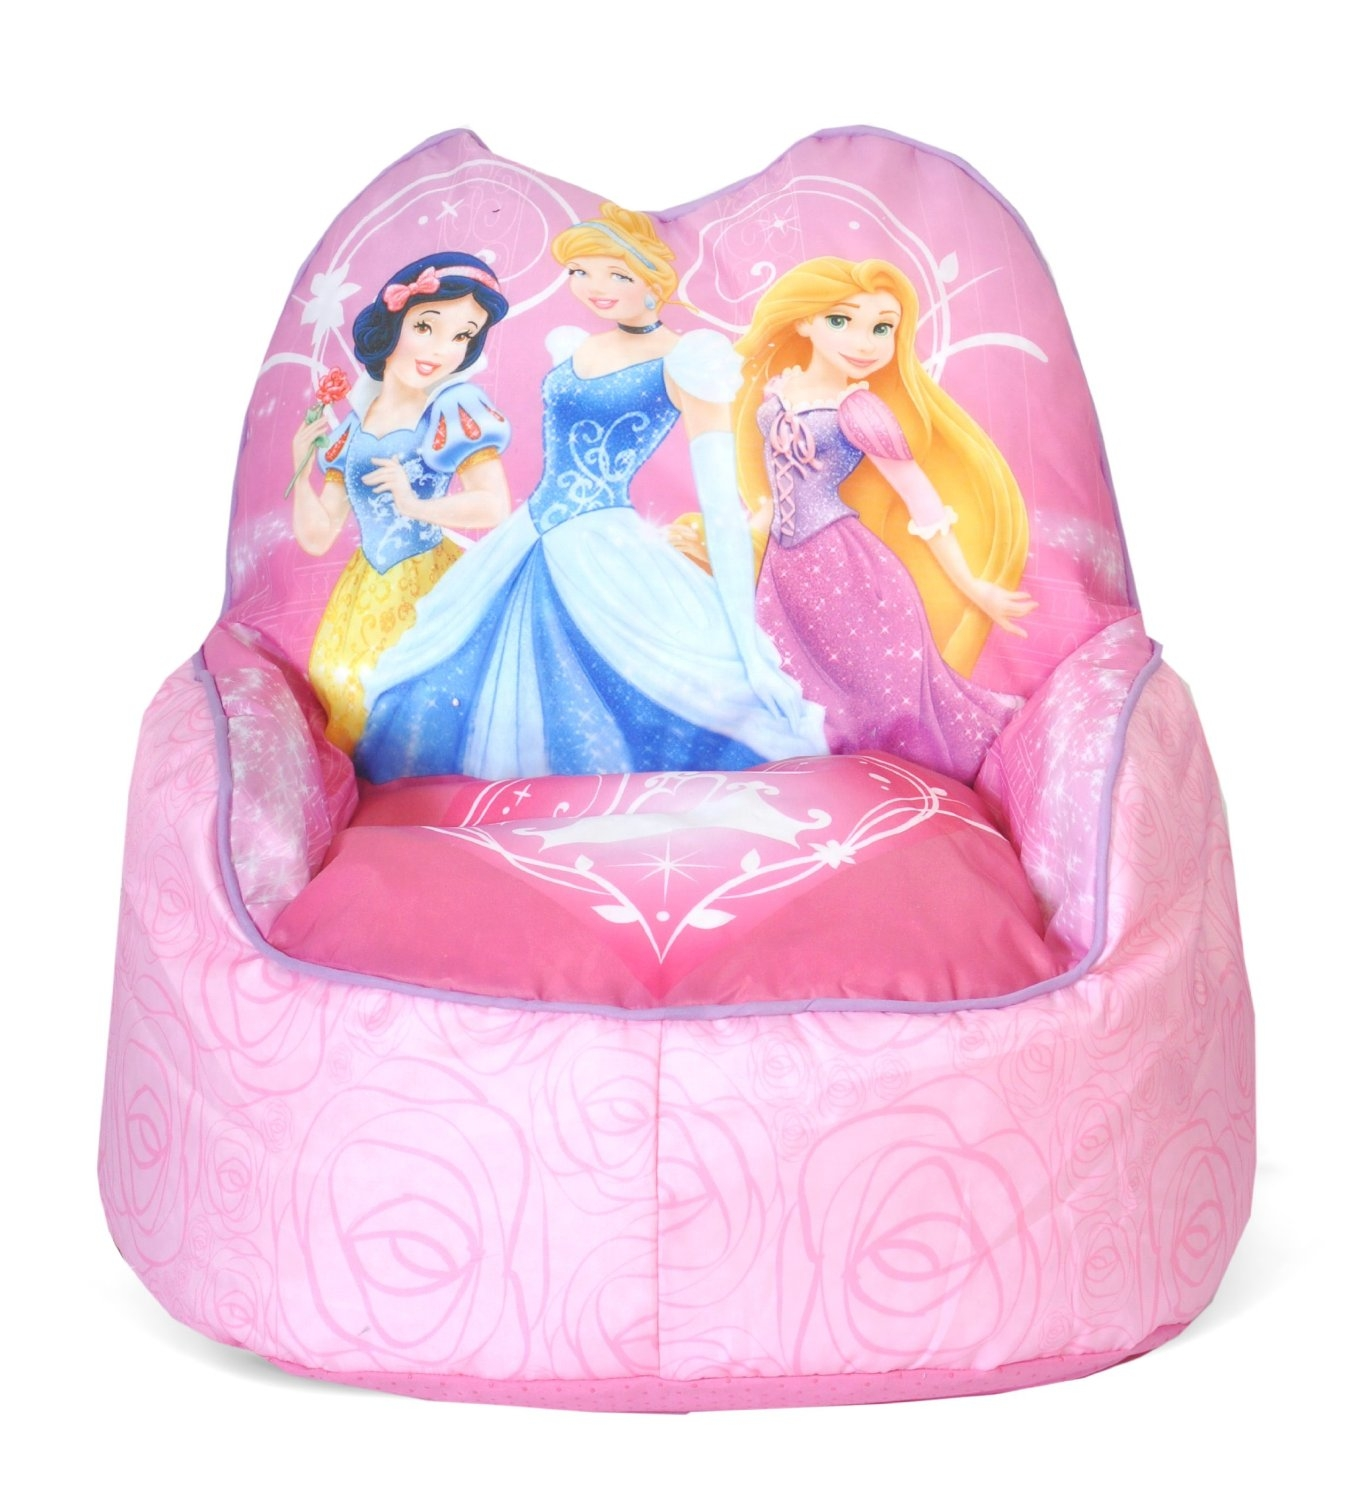 Sofa Chair For Kid Home Chair Designs Pertaining To Disney Sofa Chairs (View 4 of 15)